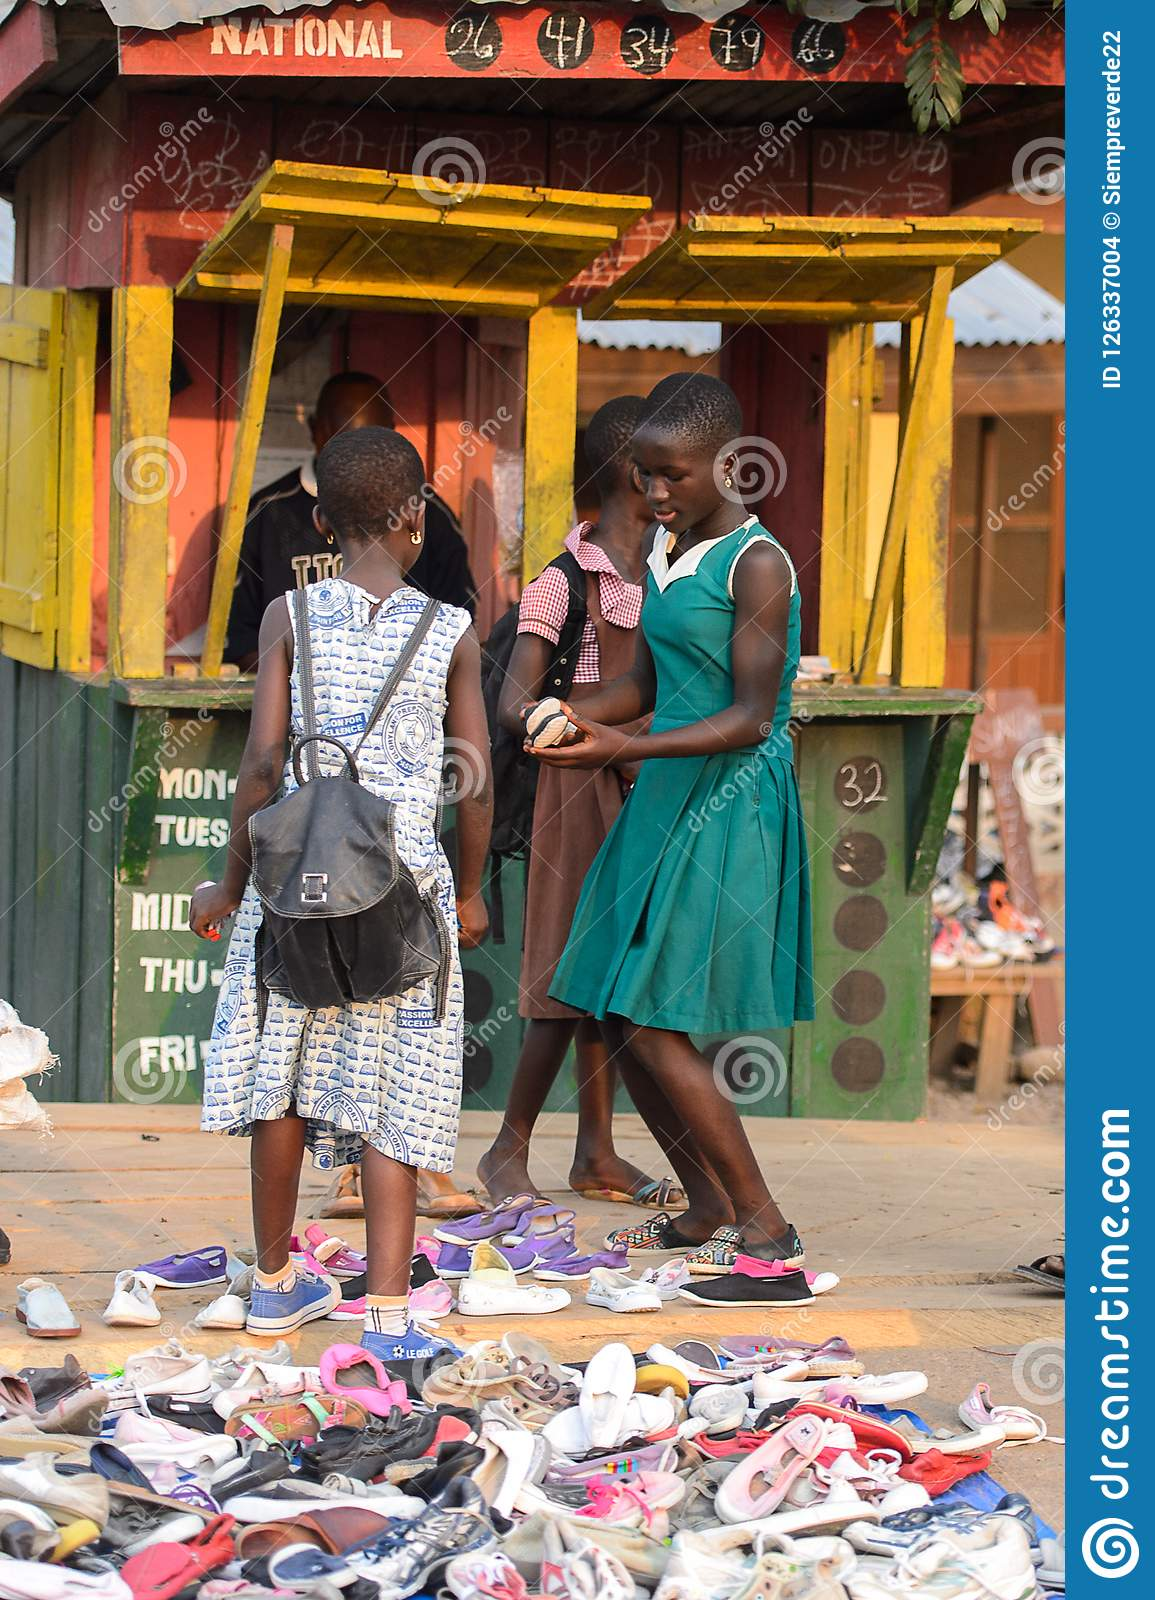 dd3f995c5adc Unidentified Ghanaian Girls Pick Up Shoes In Local Village. Peo ...